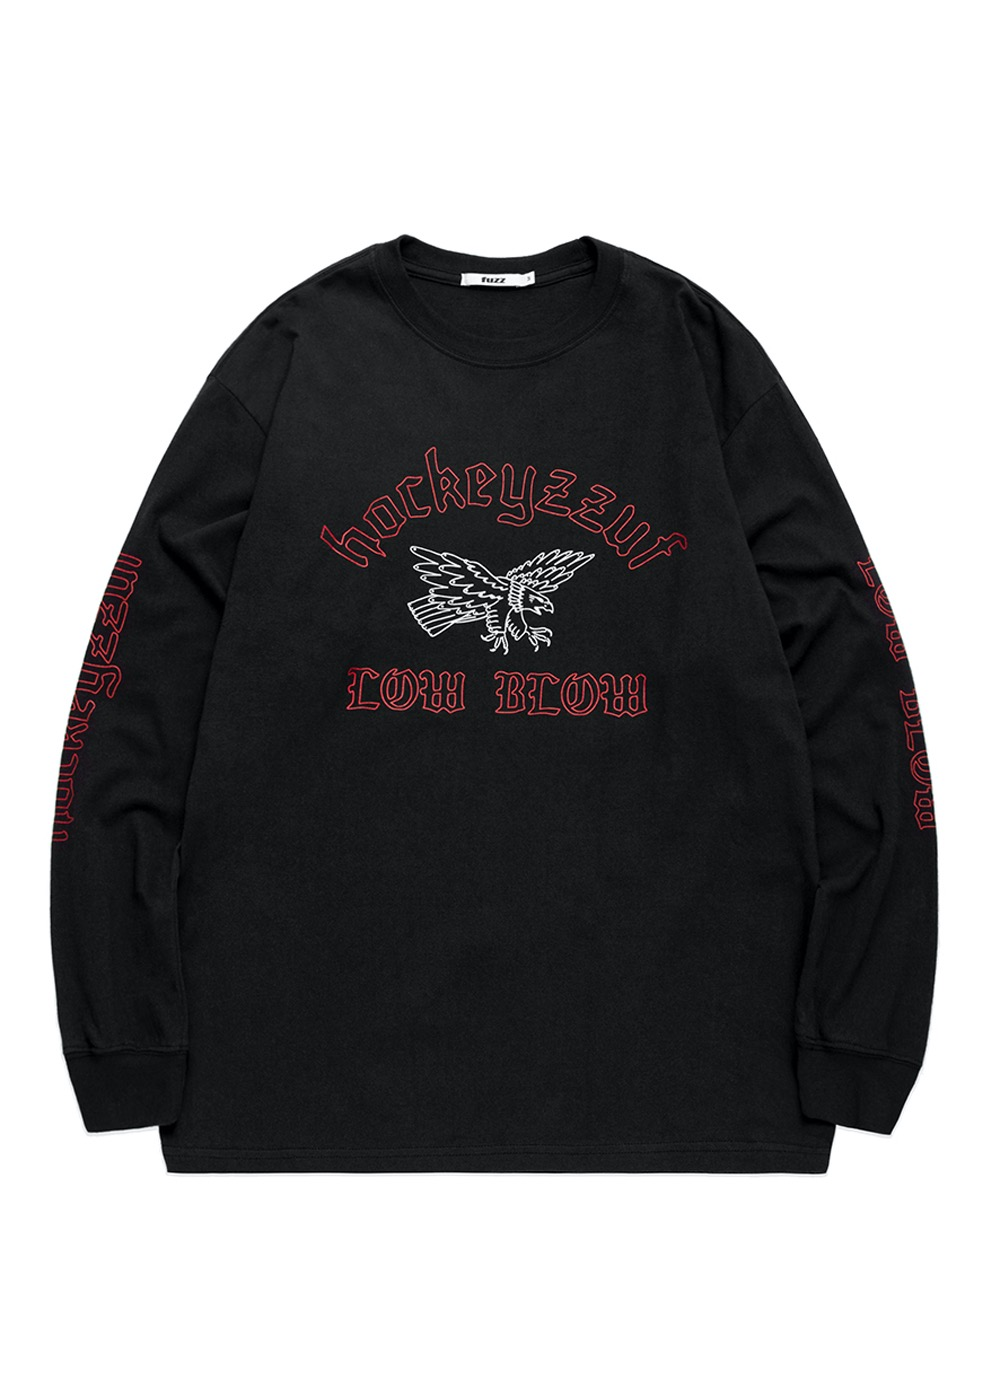 FUZZ X HOCKEY STICK CHOP L/S TEE dark charcoal